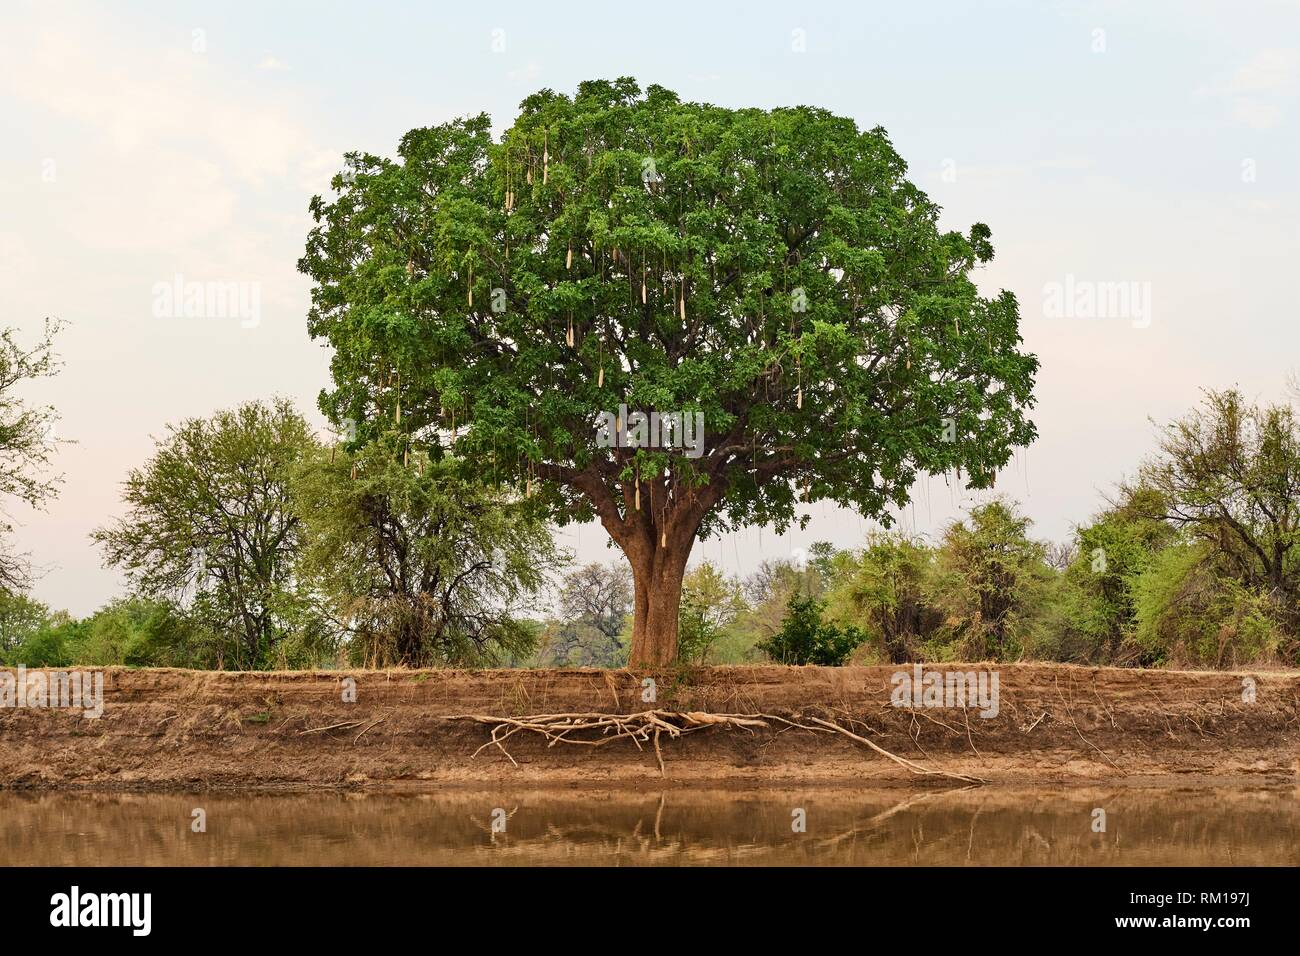 Exposed roots of a sausage tree (Kigelia pinnata) and eroded banks of Luangwa river at dry season, South Luangwa National Park, Zambia. - Stock Image